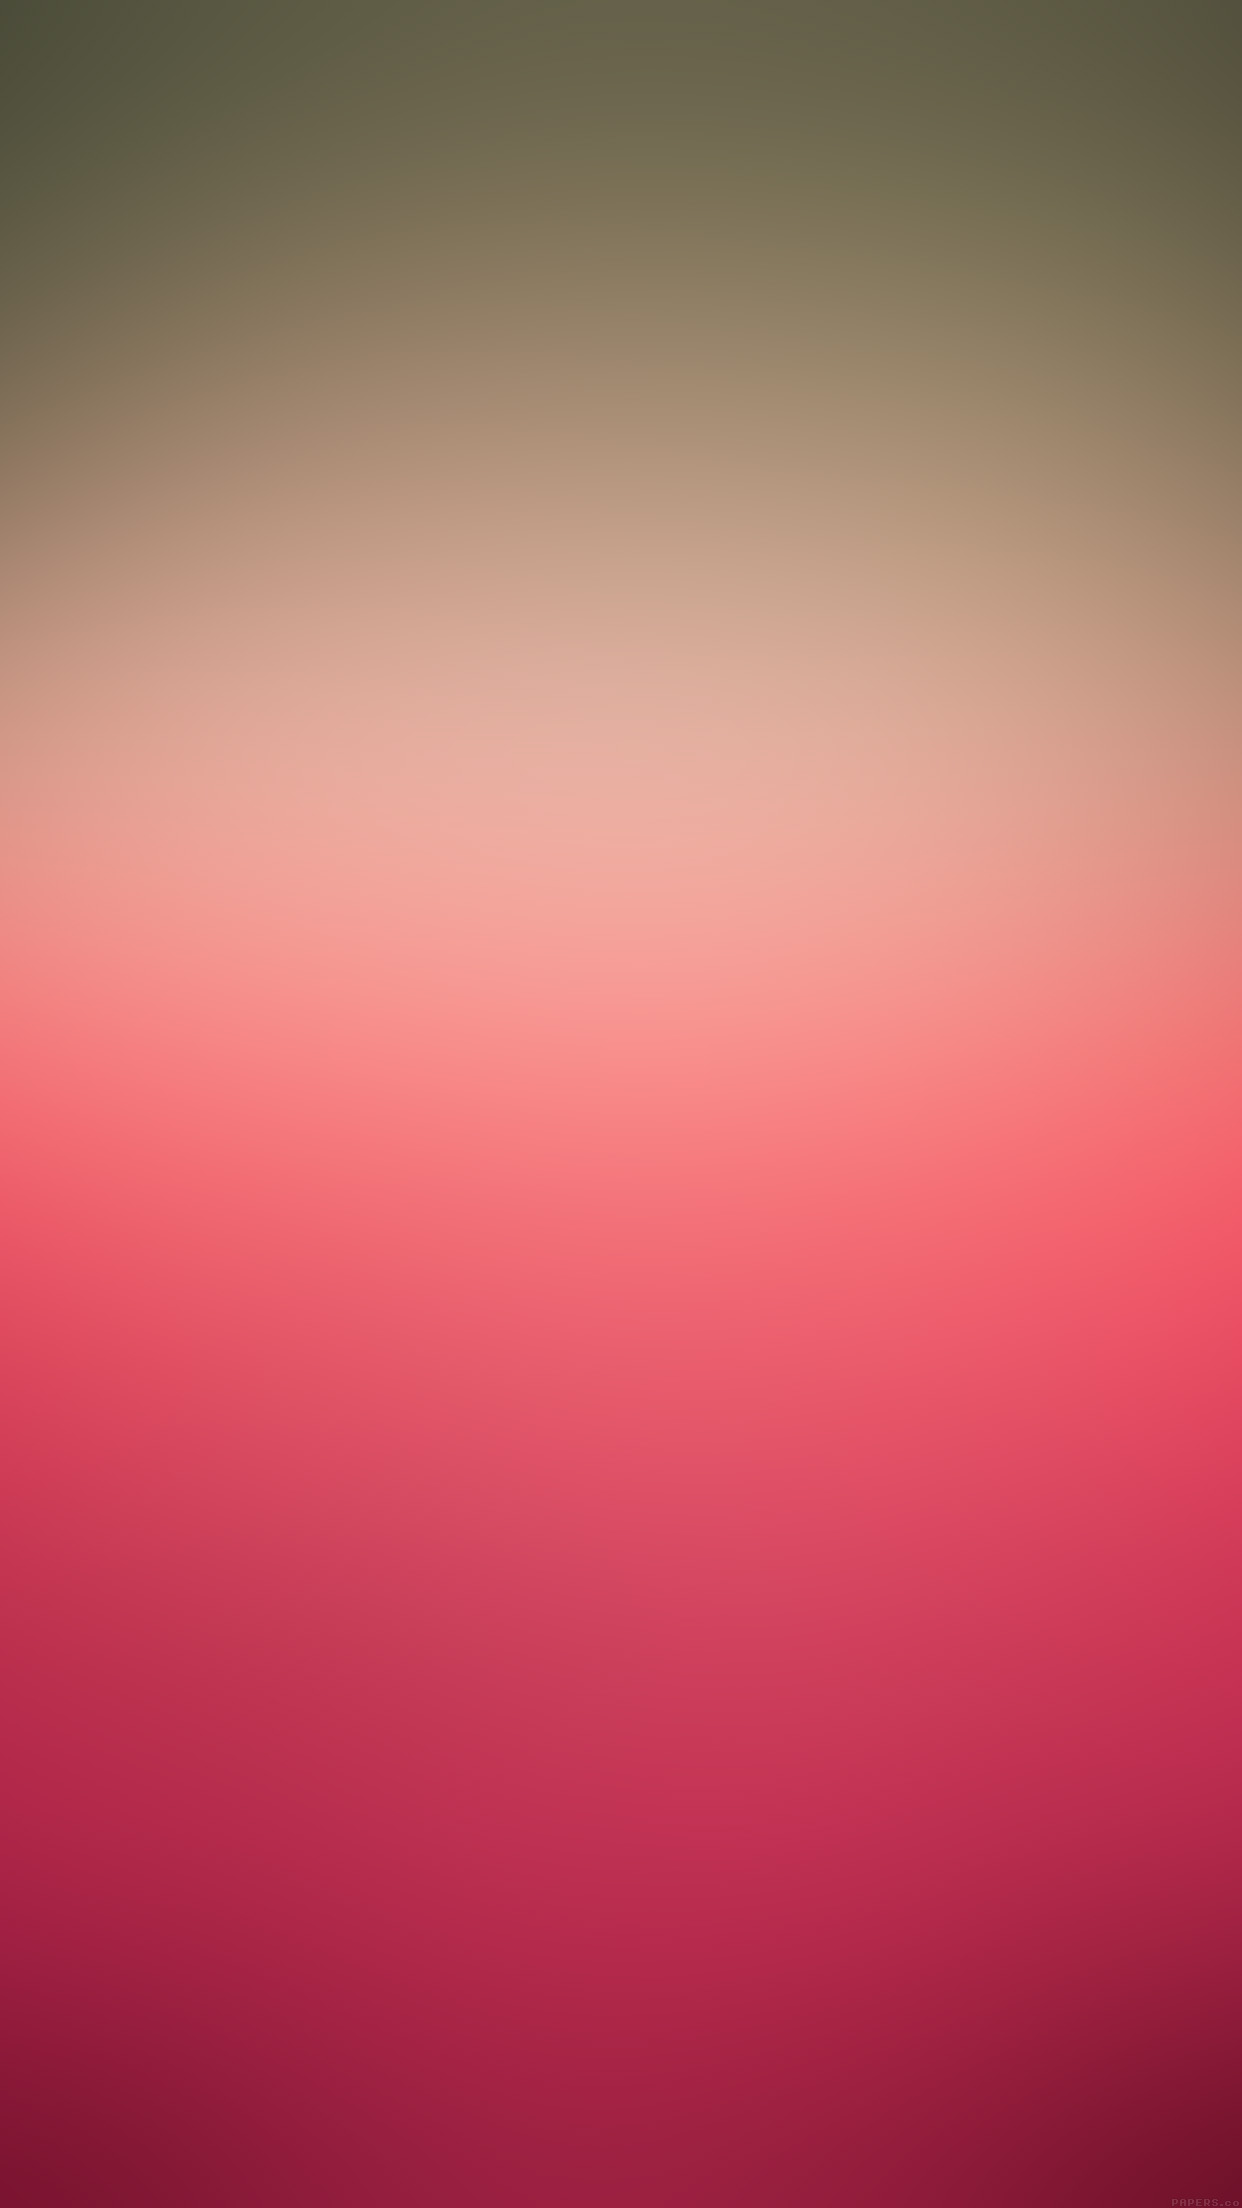 Love Pink Iphone 6 Wallpaper : sd28-pink-love-sweet-18-gradation-blur - Papers.co